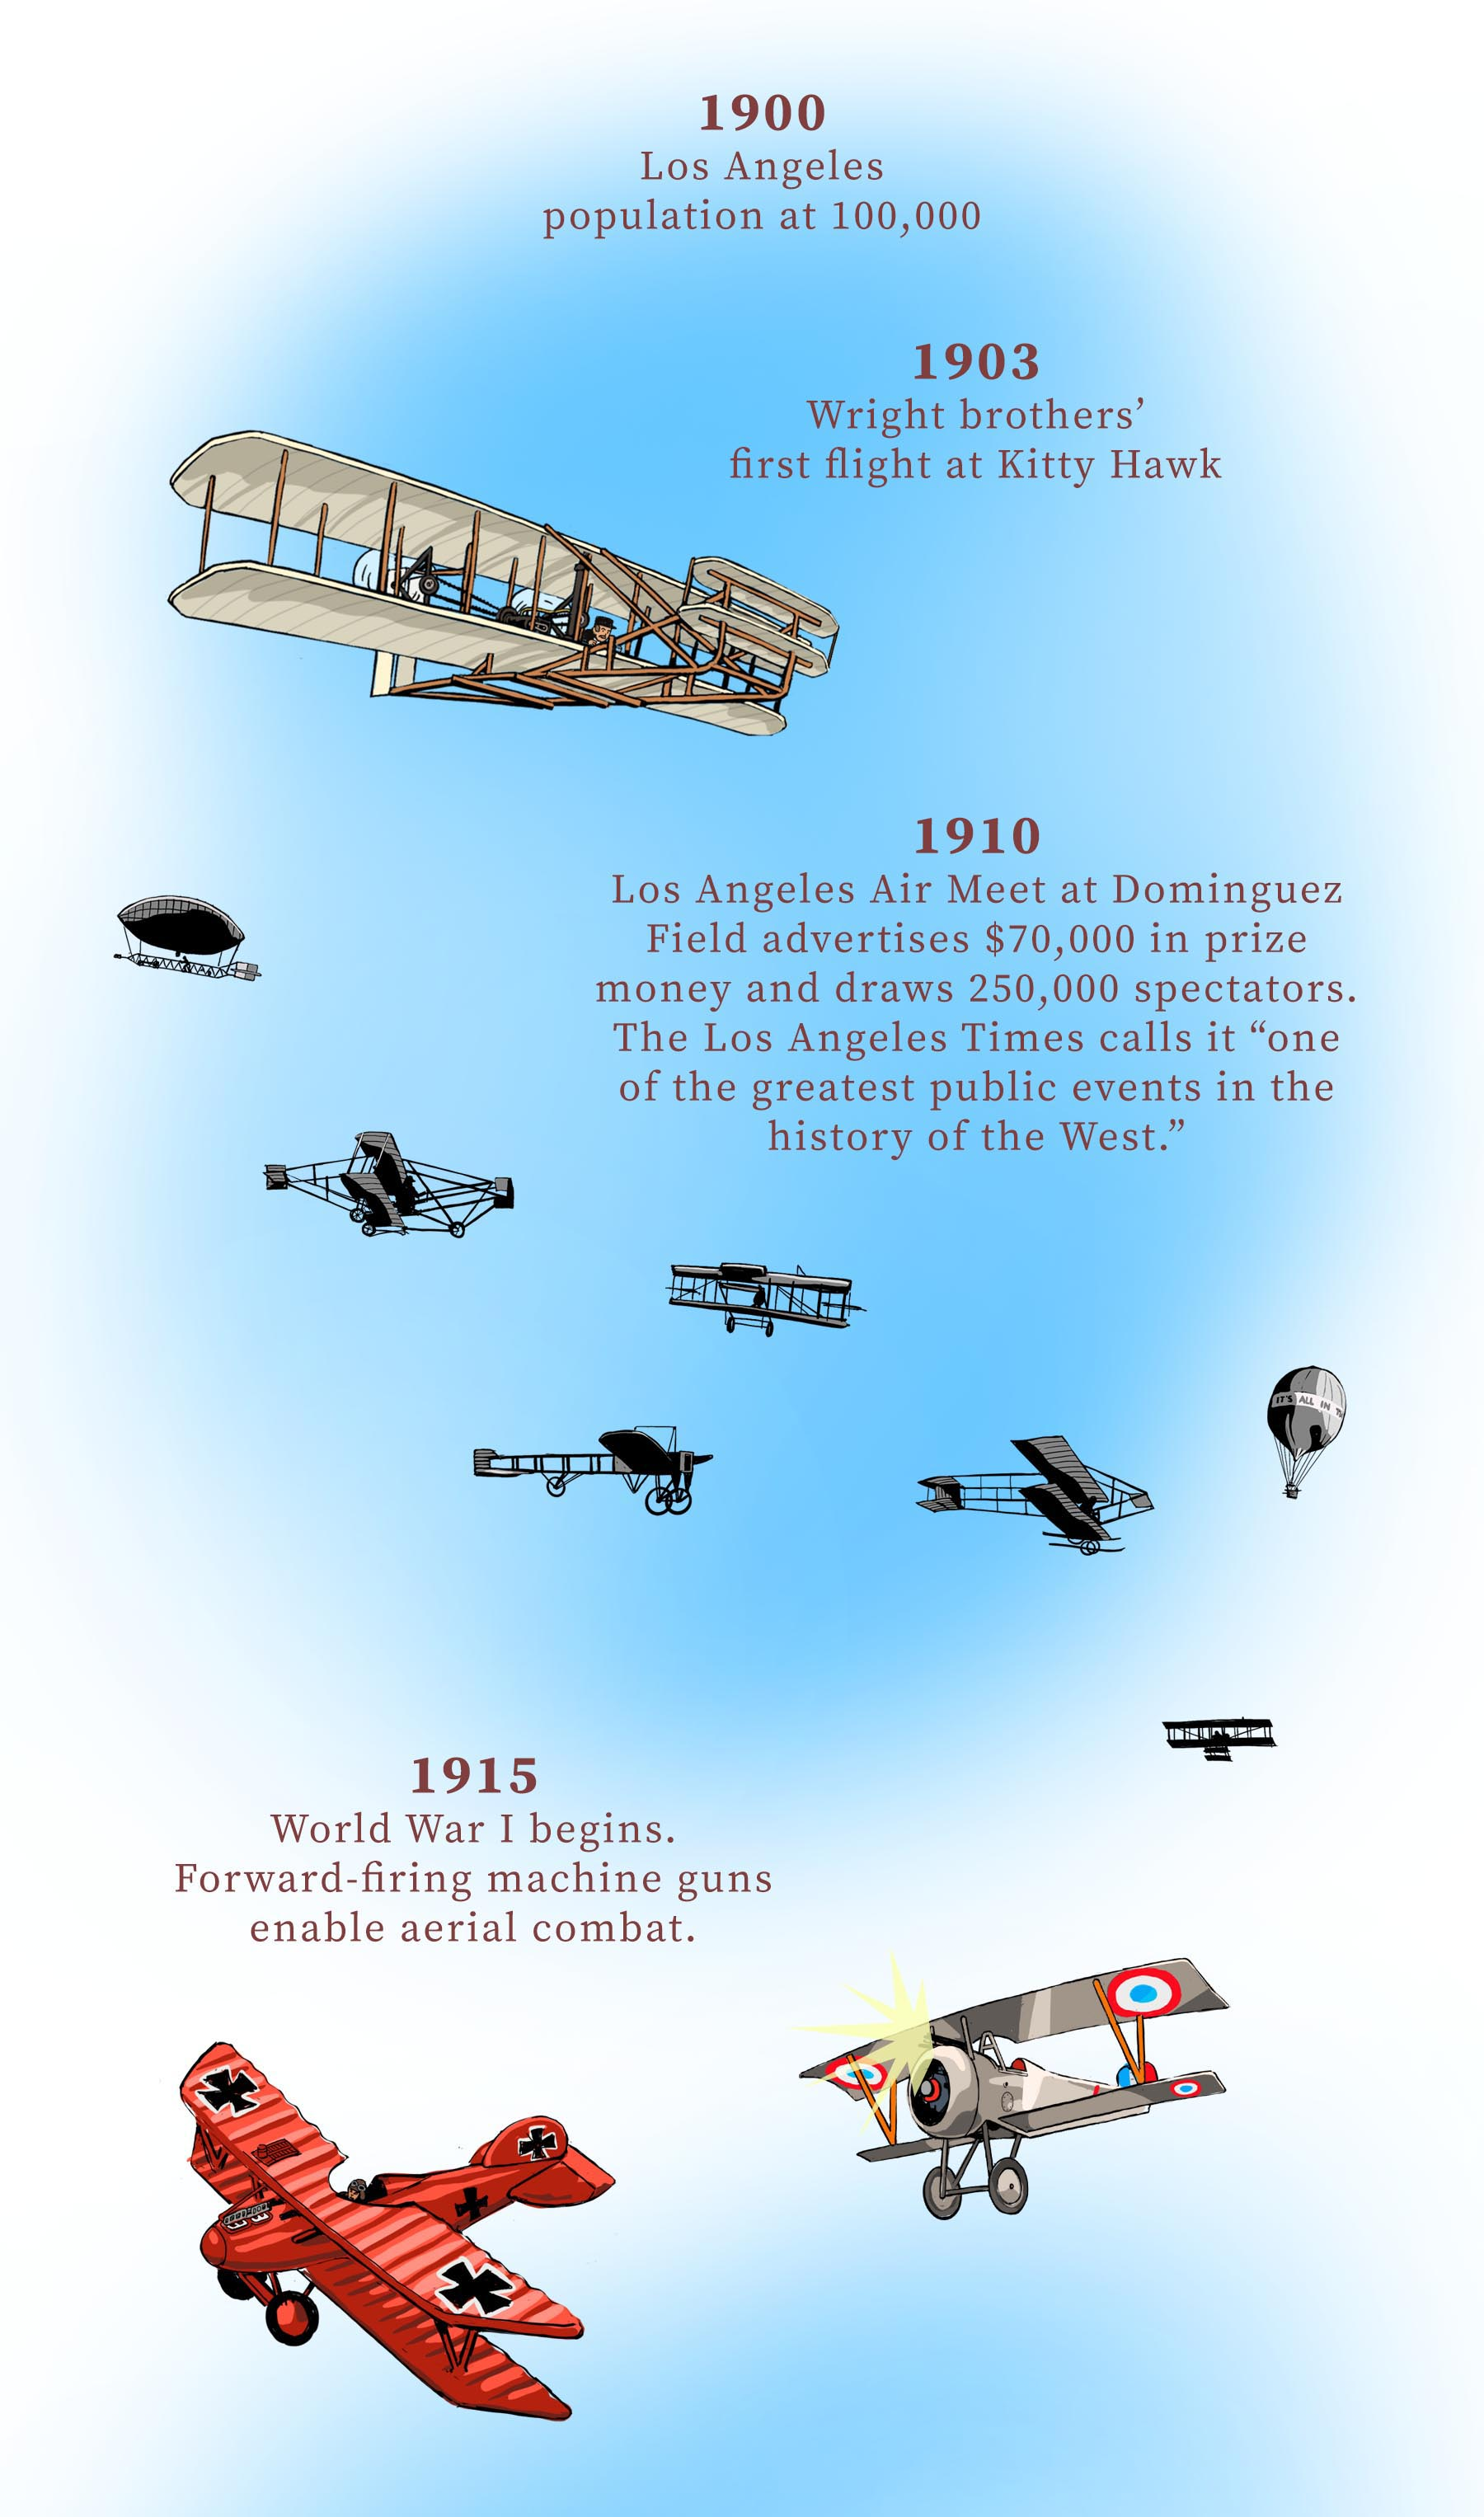 An Illustrated History of Aviation in Southern California